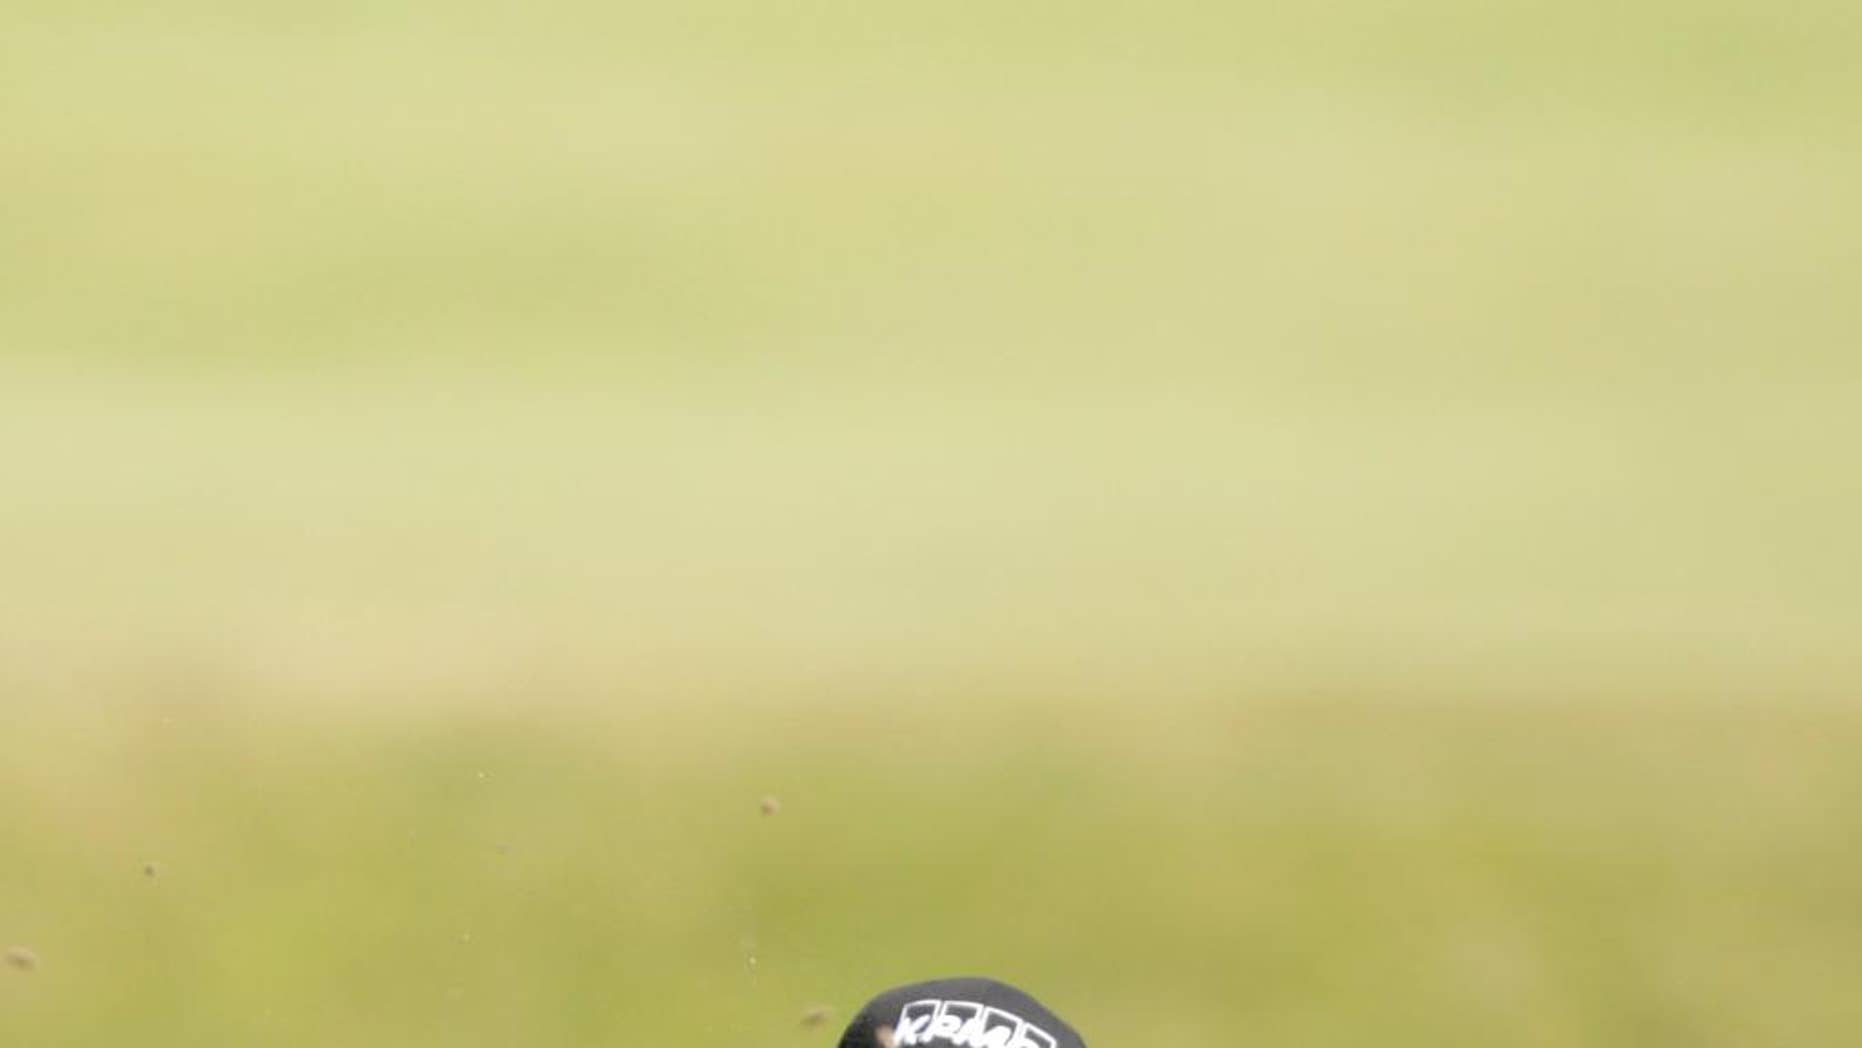 United States' Phil Mickelson plays to the 11th green during the second round of the British Open Golf Championship at the Old Course, St. Andrews, Scotland, Friday, July 17, 2015. (AP Photo/Alastair Grant)